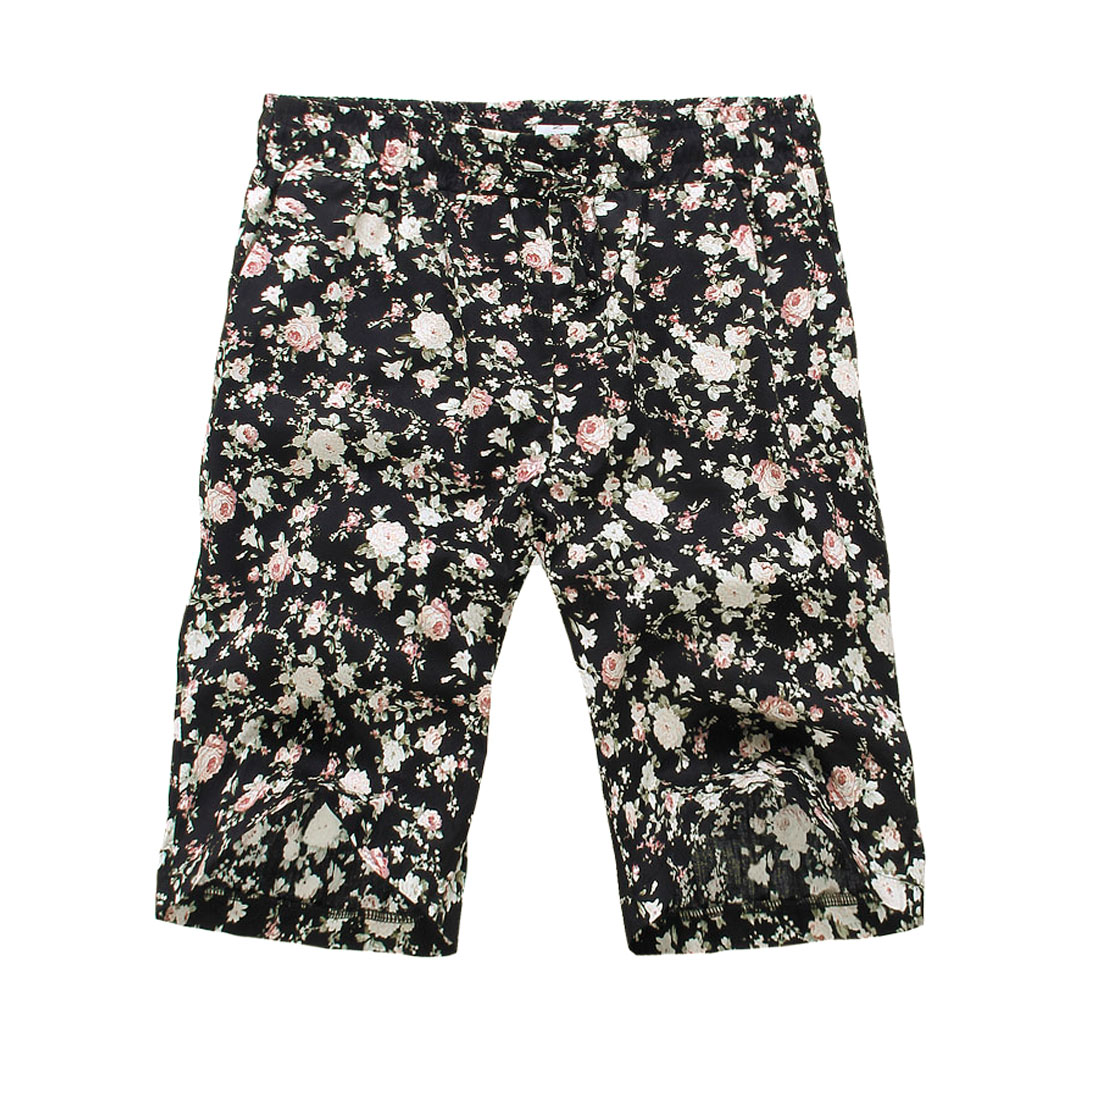 Men Drawstring Waist Floral Prints Decor Multicolor Shorts W27